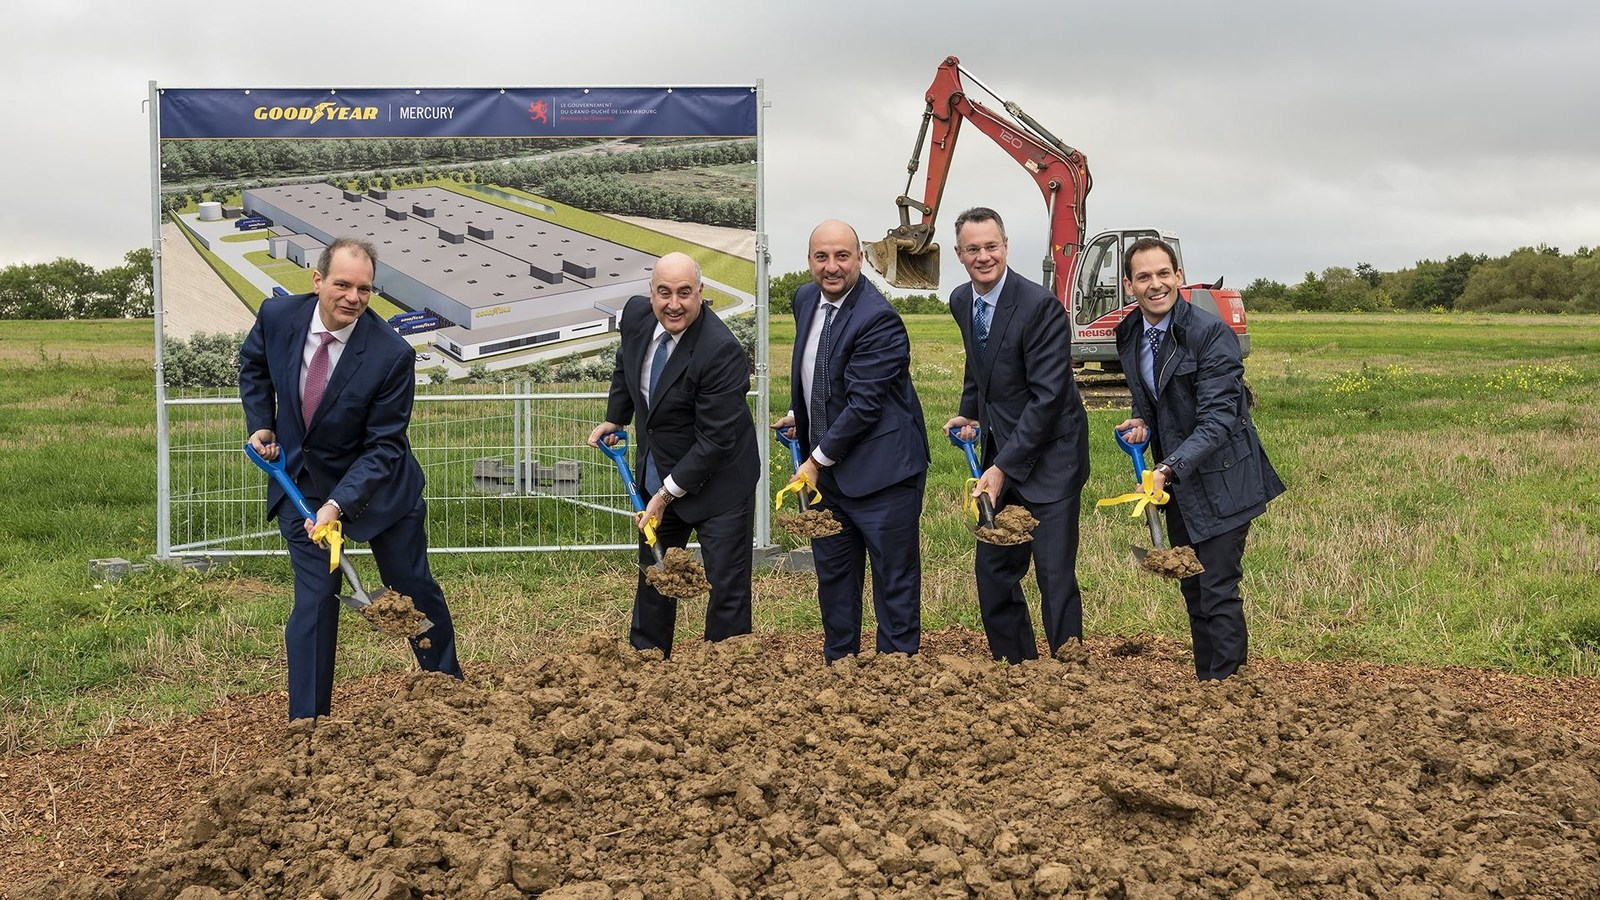 Groundbreaking Goodyear Mercury Production. Right to left Dan Biancalana Richard J. Kramer Etienne Schneider Chris Delaney Carlos Cipollitti